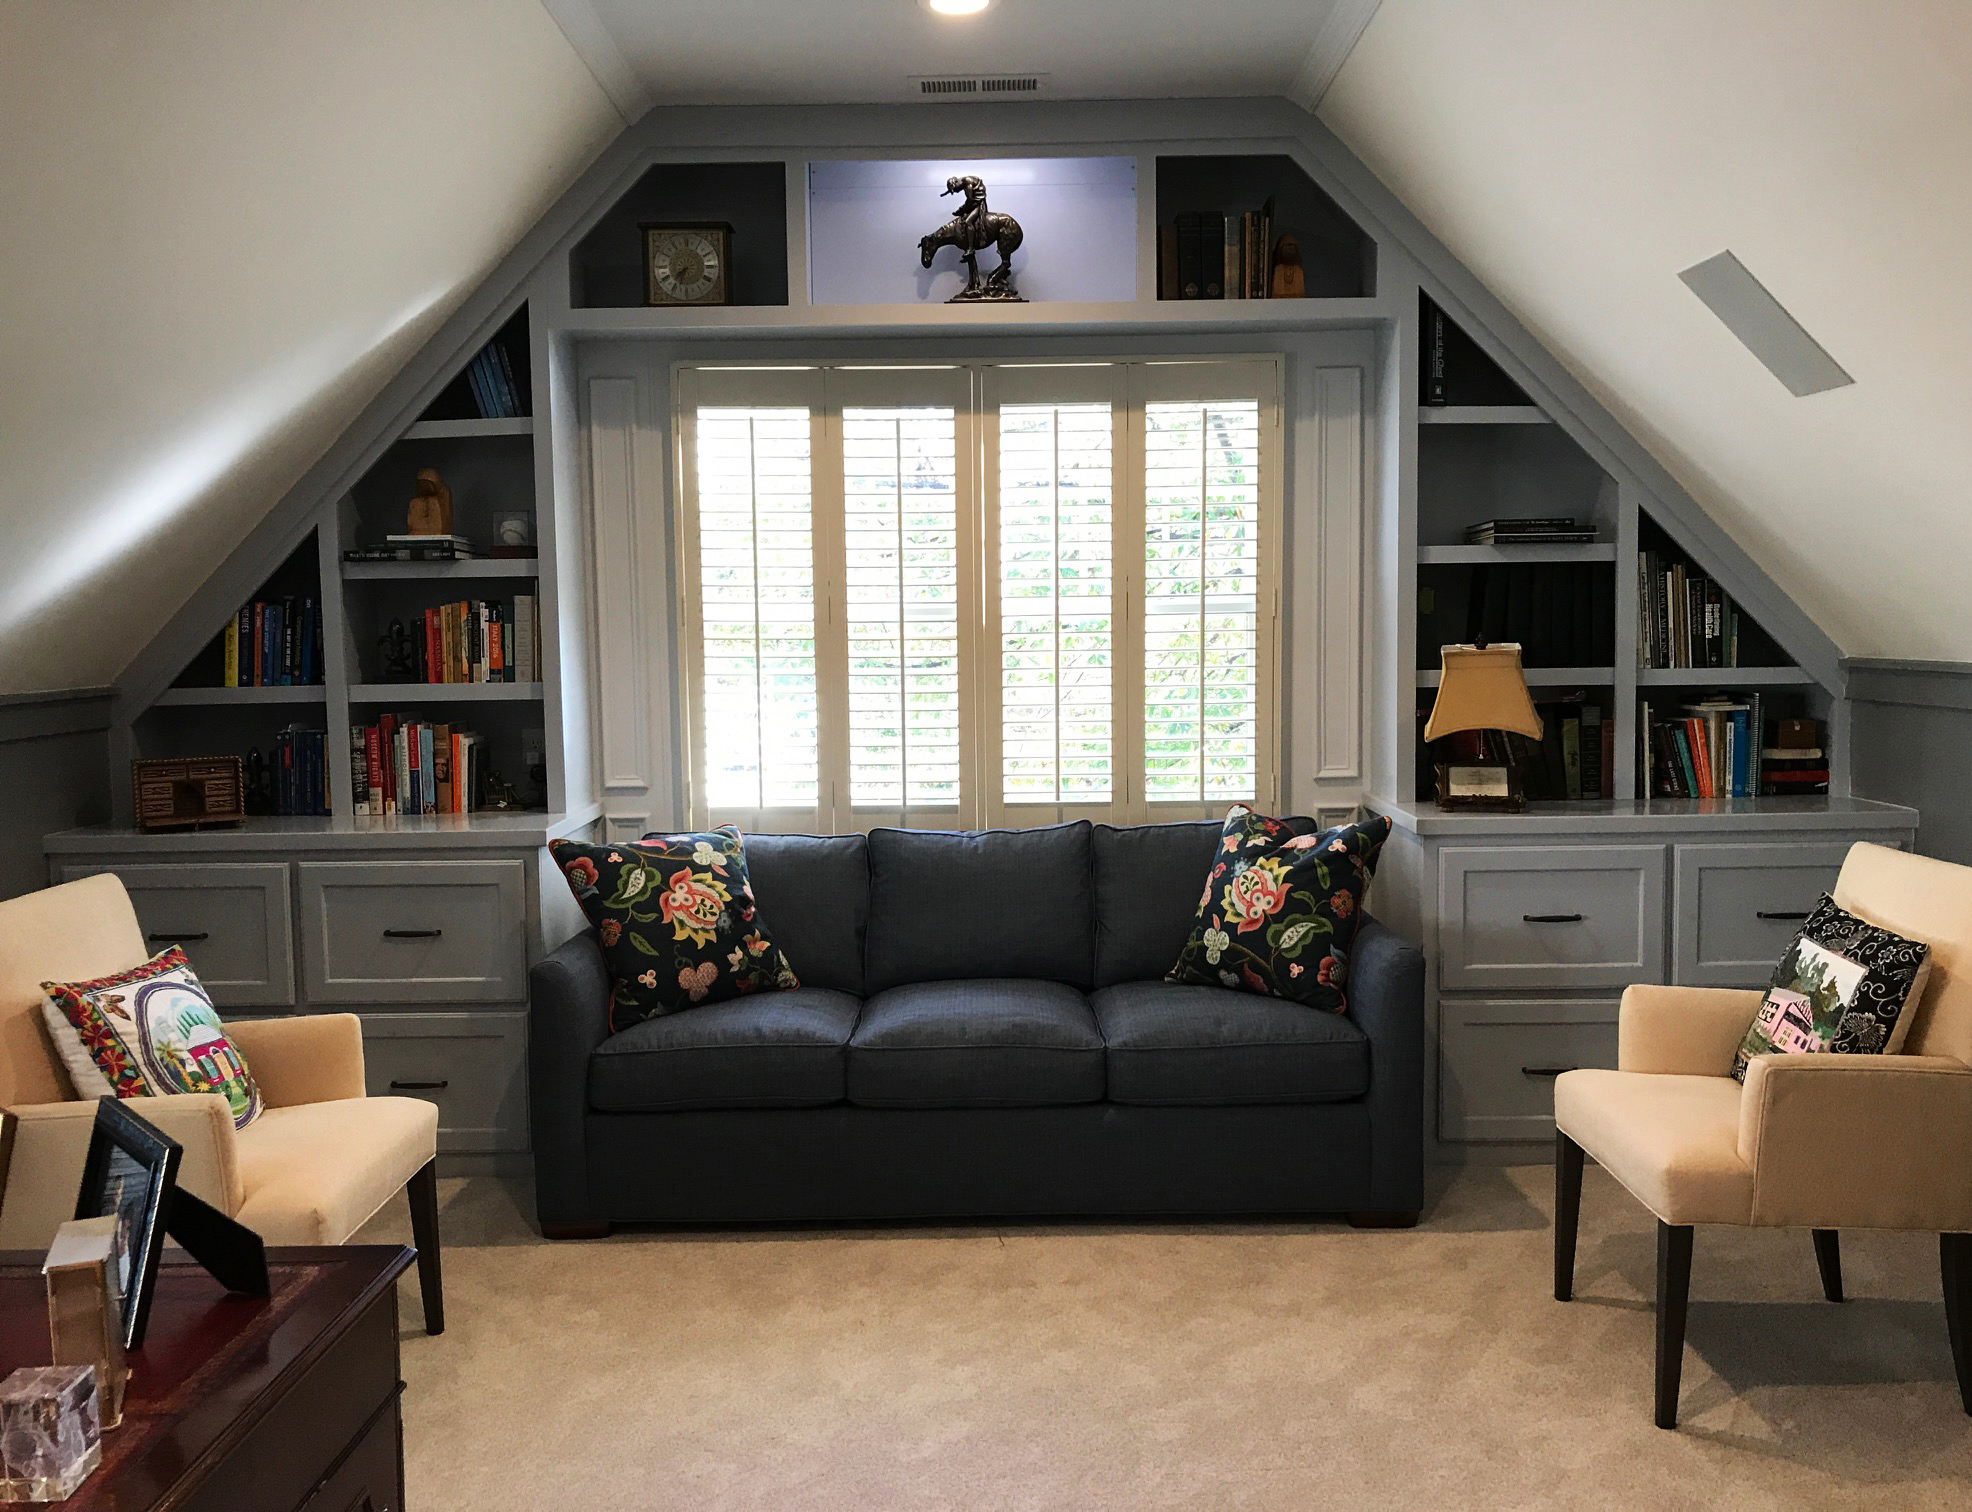 Gable Built-In with Fixed & Adjustable Shelves, Shaker Drawers, and 1-By Crown Detail